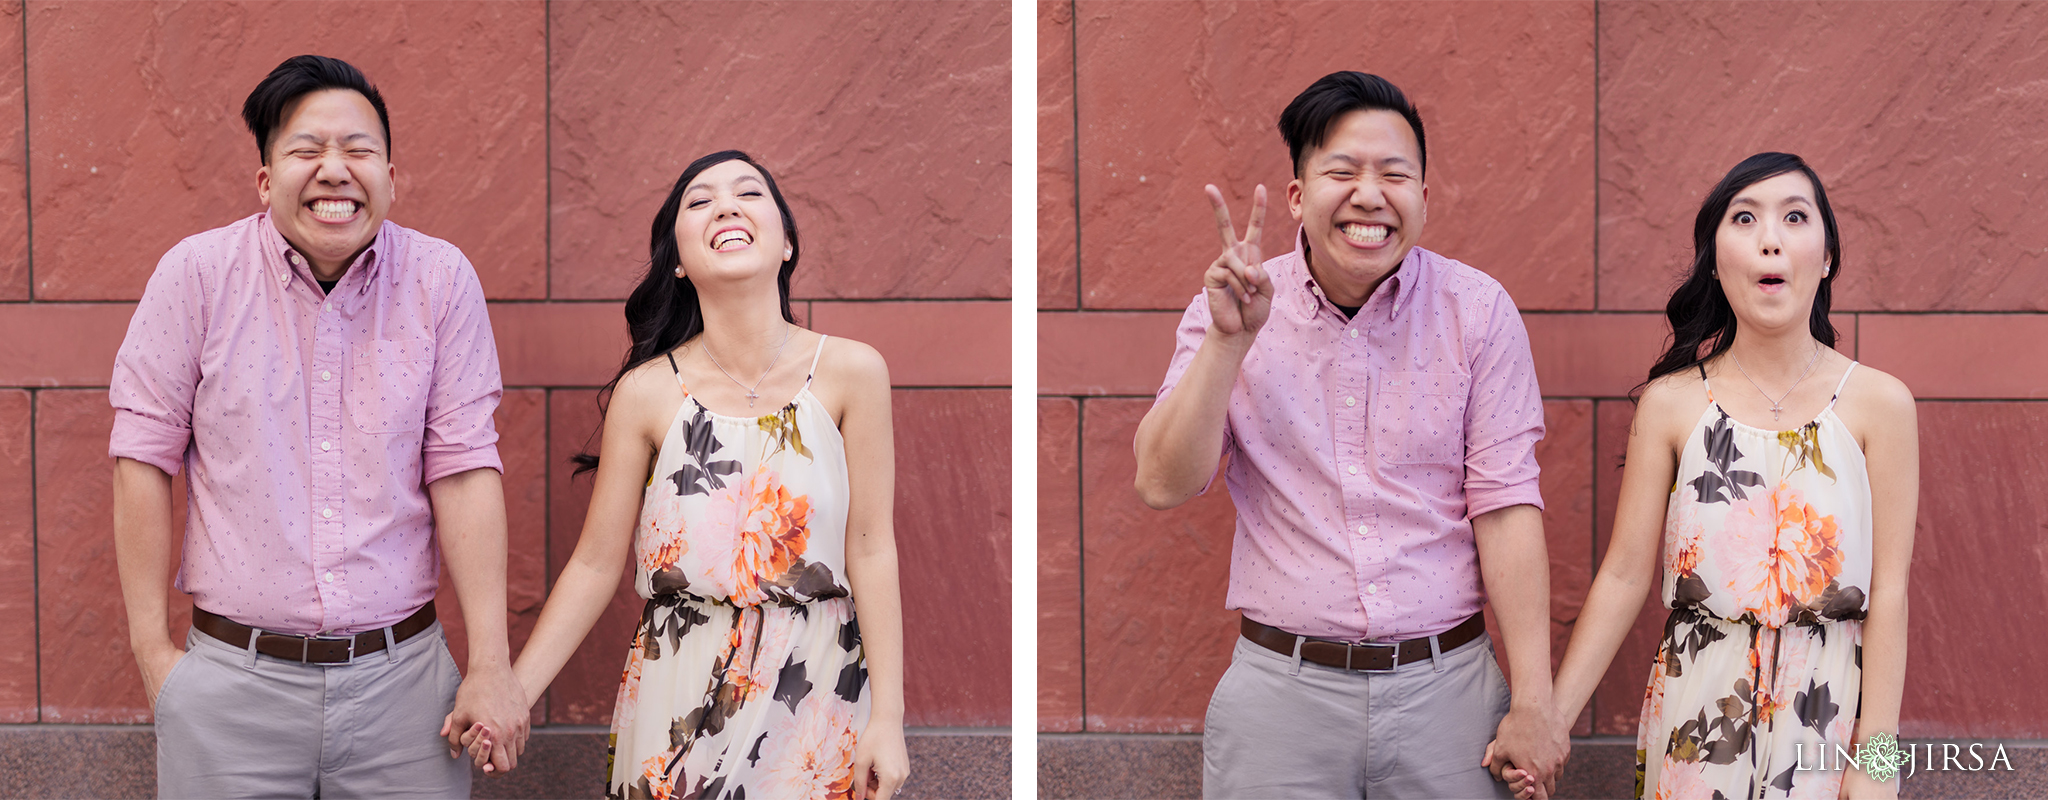 zbf Downtown Los Angeles Engagement Photography